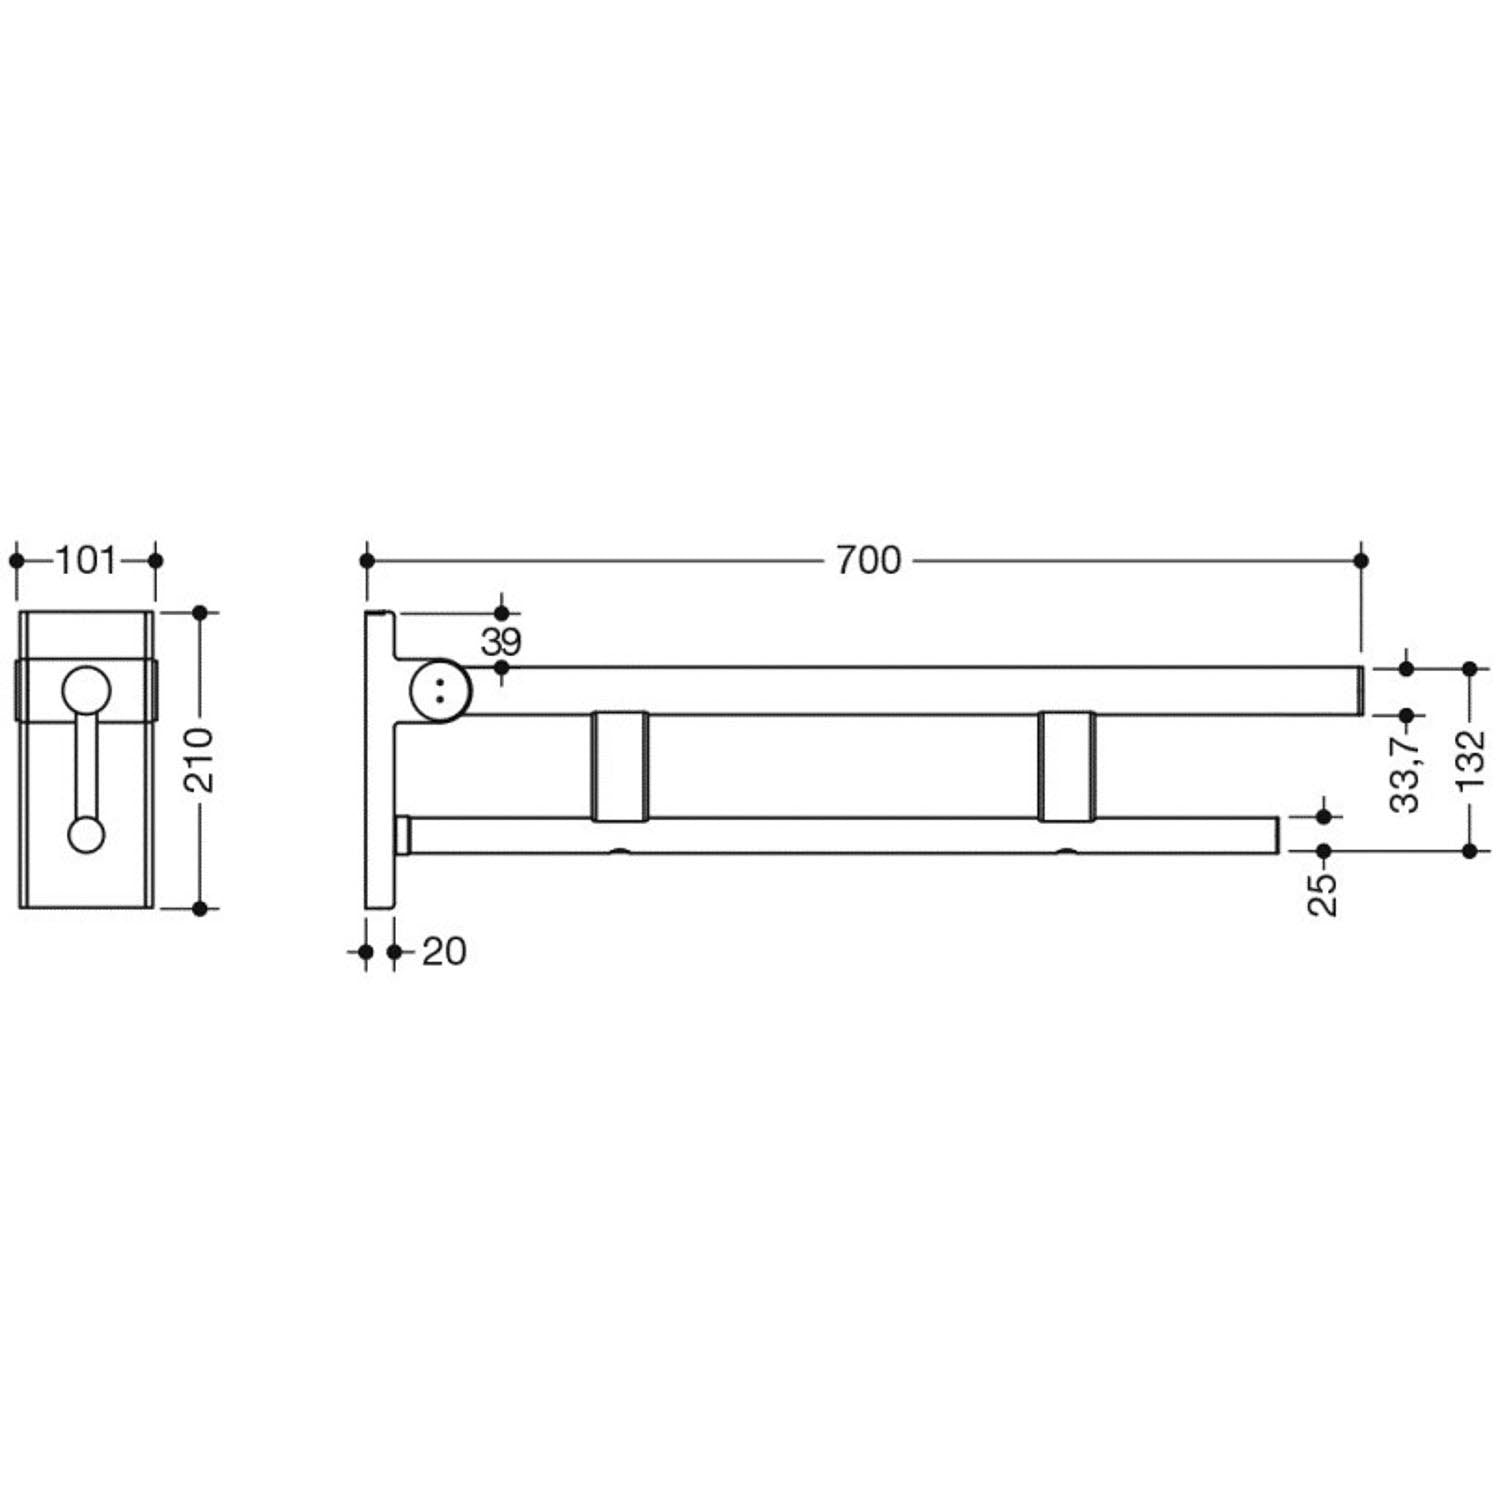 700mm Freestyle Removable Hinged Grab Rail Set with a satin steel finish dimensional drawing